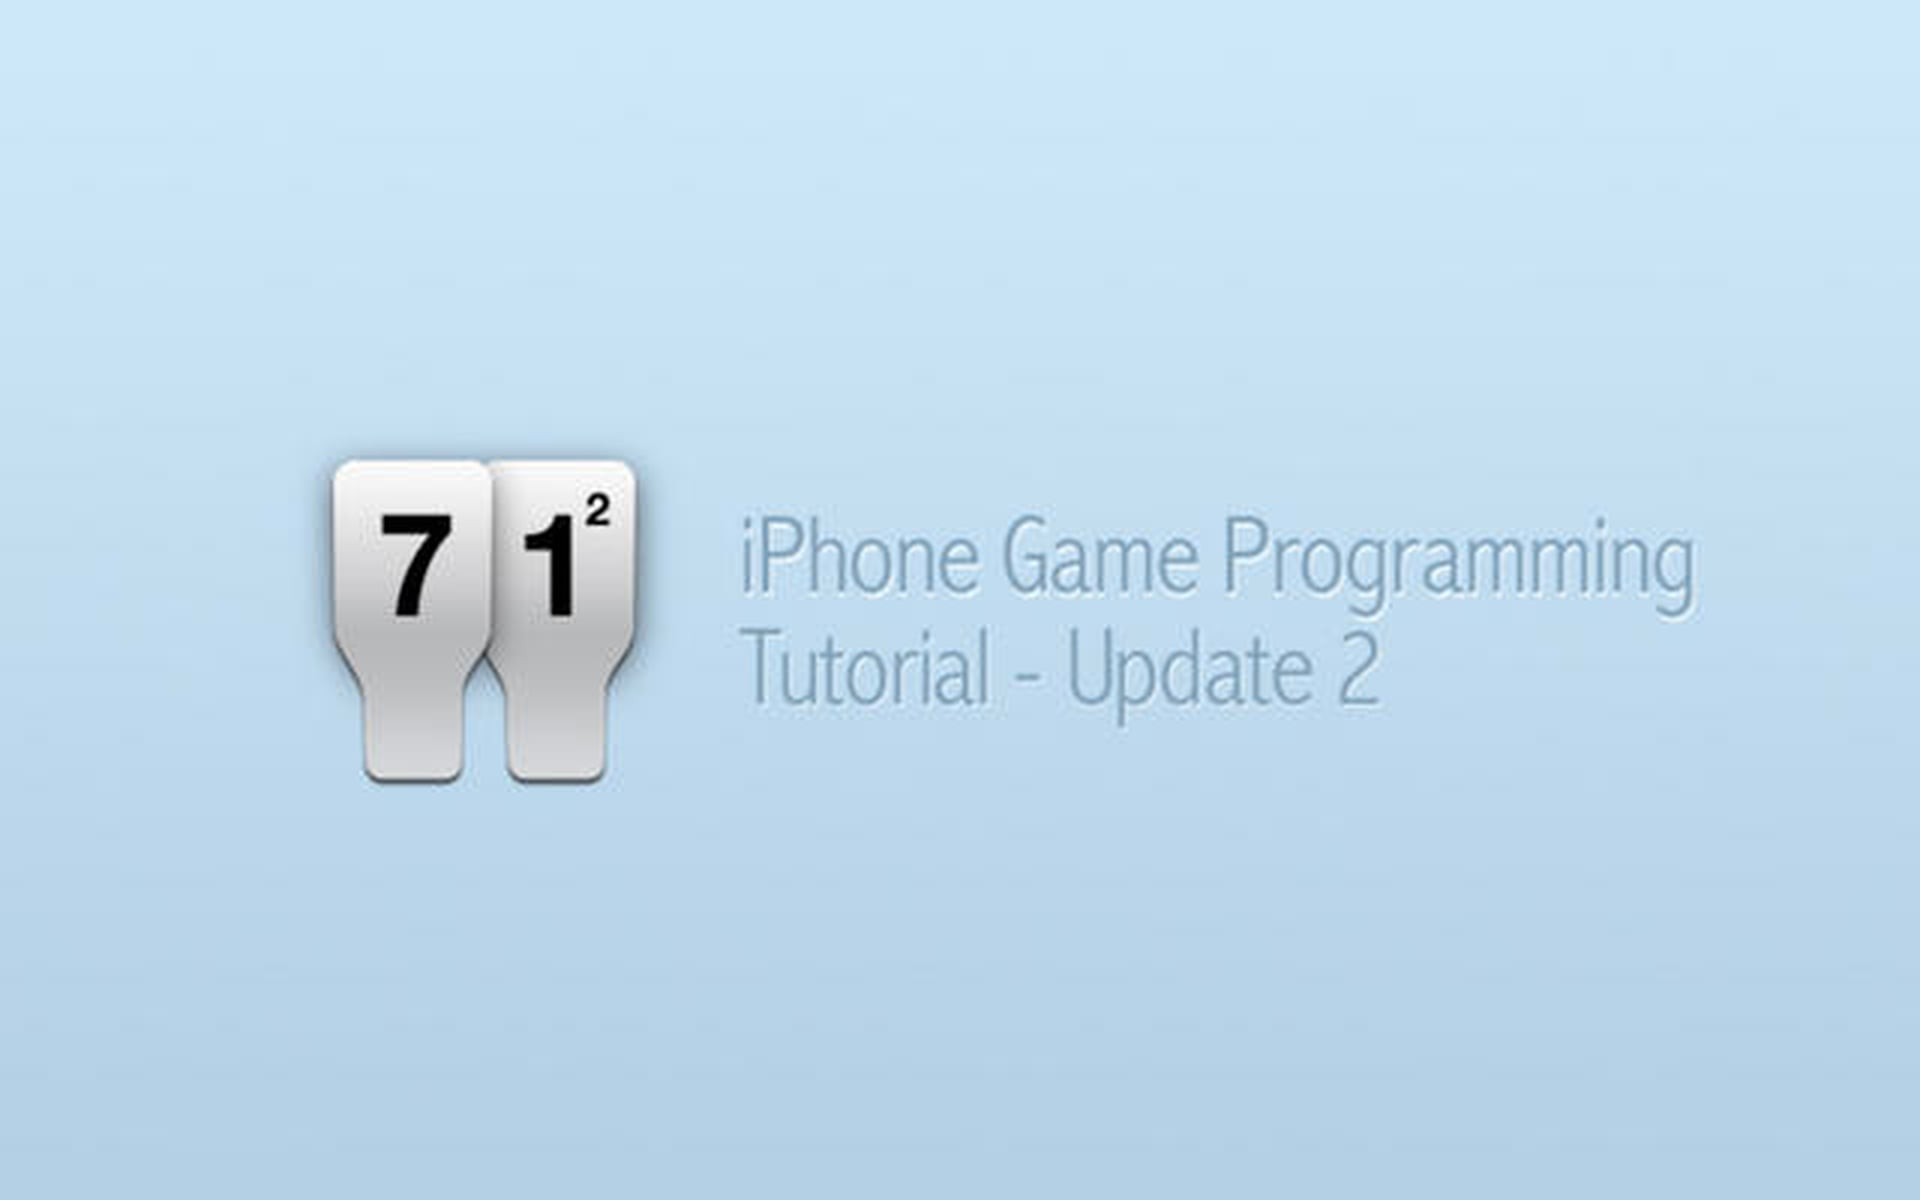 iPhone Game Programming – Tutorial Update 2